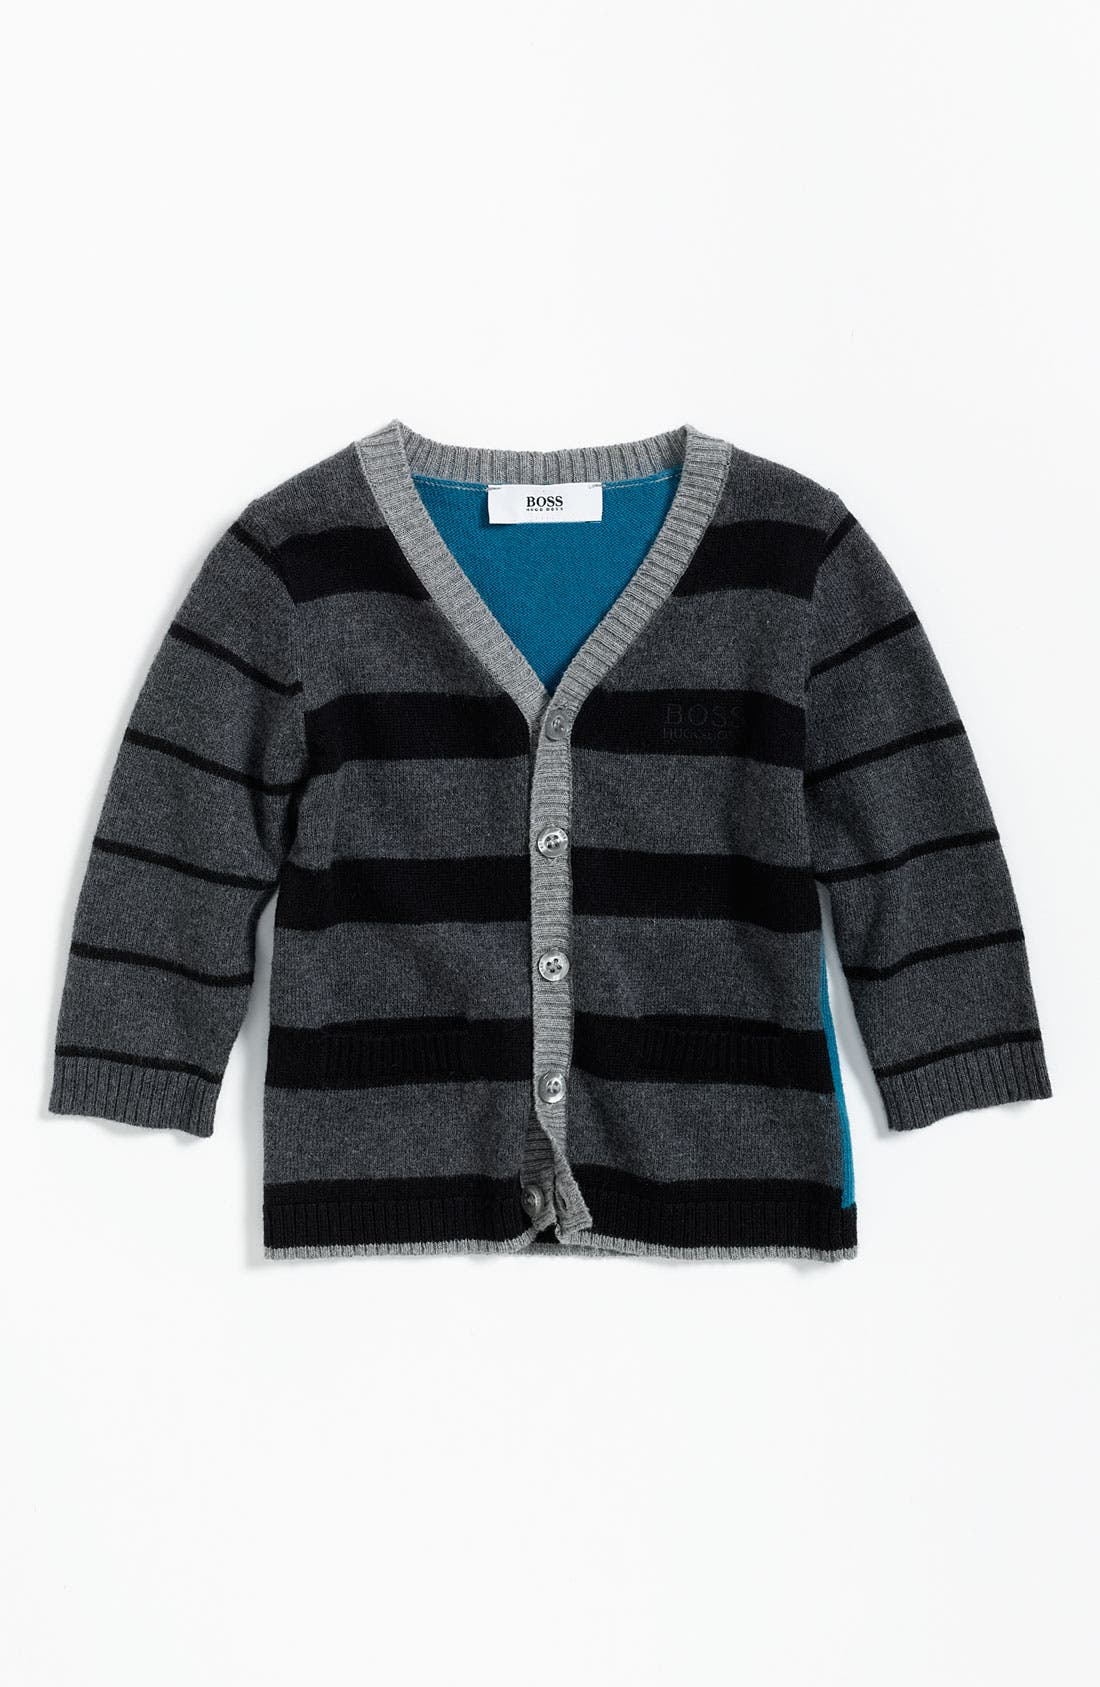 Main Image - BOSS Kidswear Stripe Cardigan (Infant)